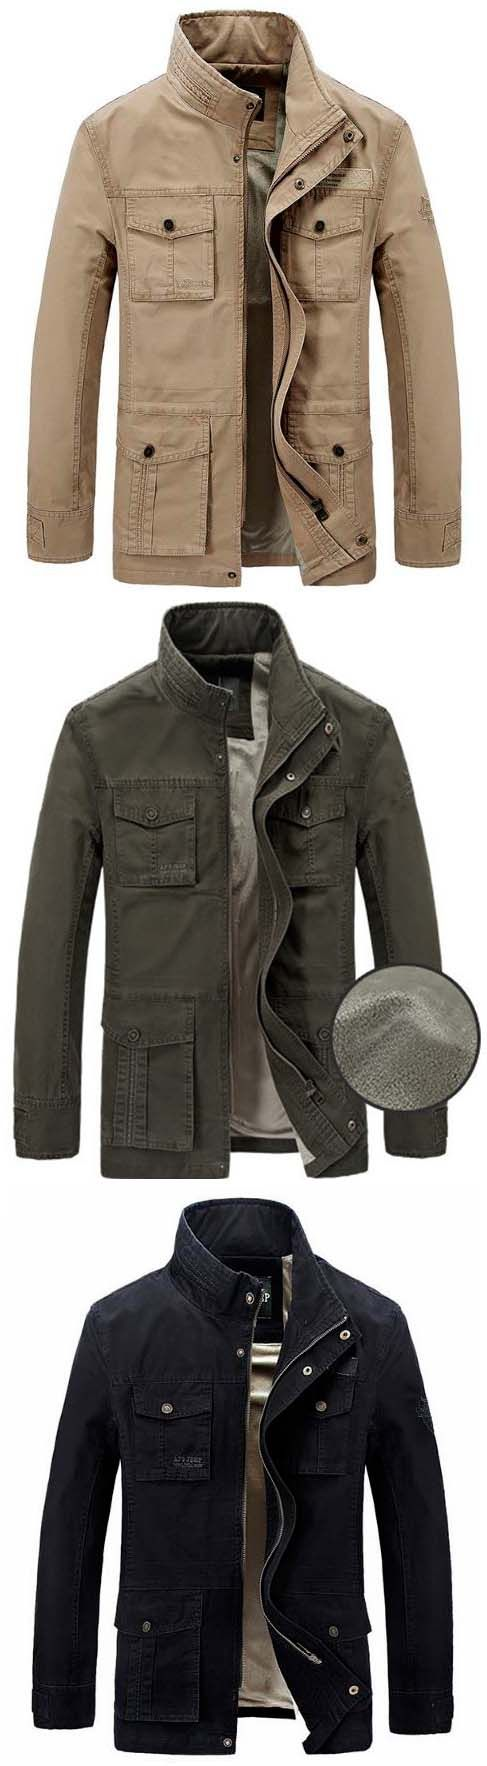 jacket:Plus Size Outdoor Cargo Loose Multi Pockets Thicken Jackets for Men